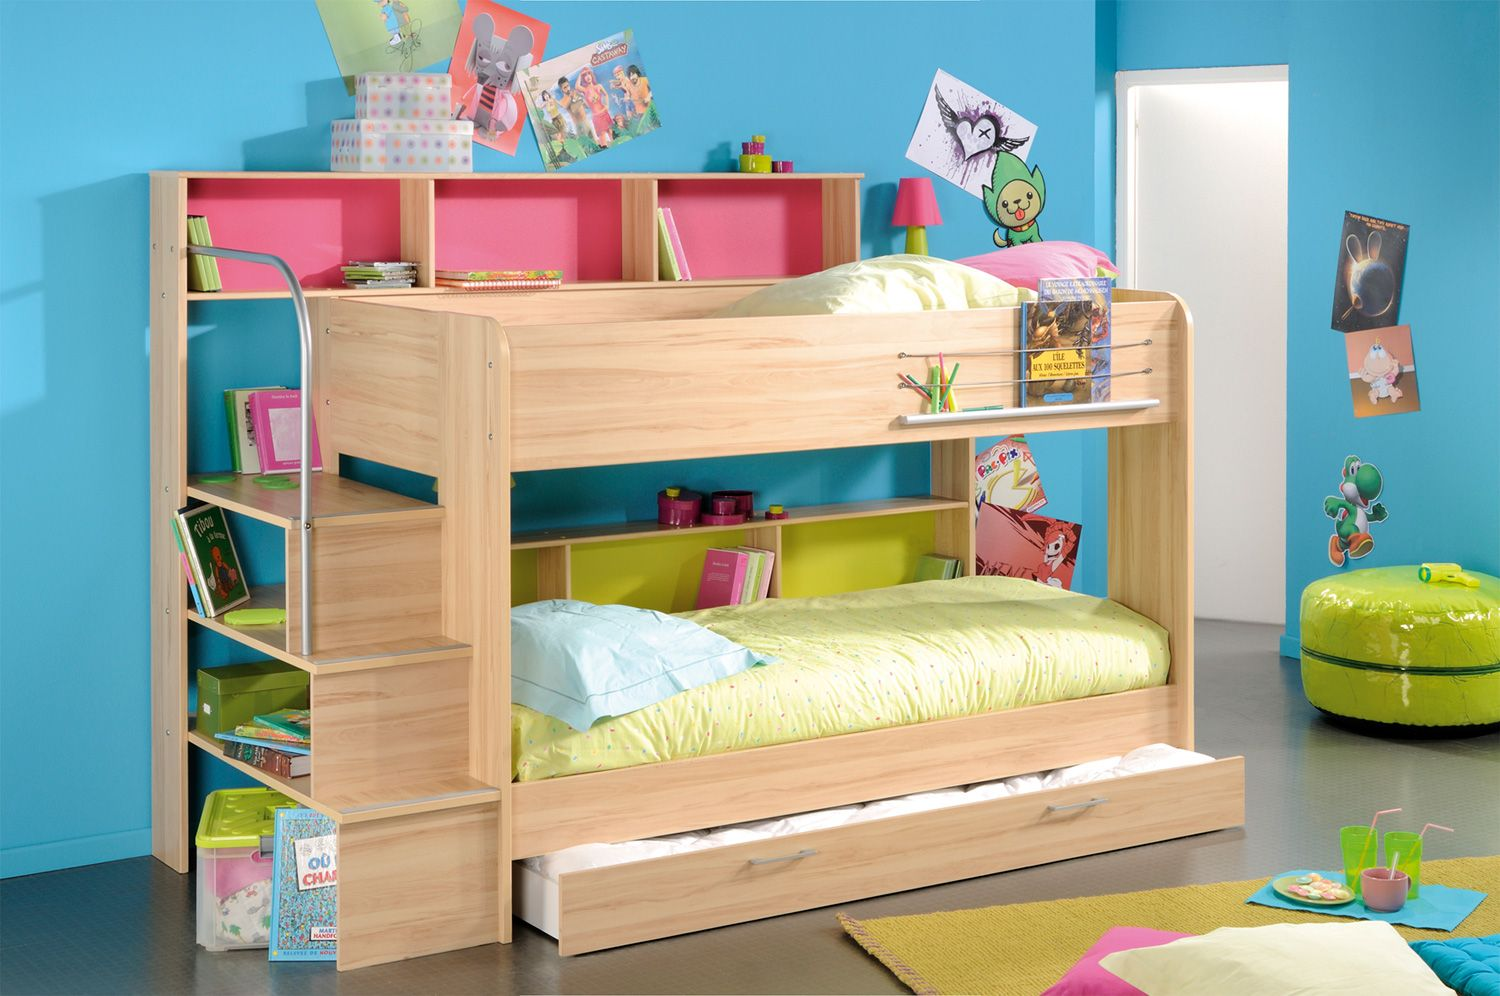 Kurt Bunk Bed Cool bunk beds, Bunk beds for sale, Kids